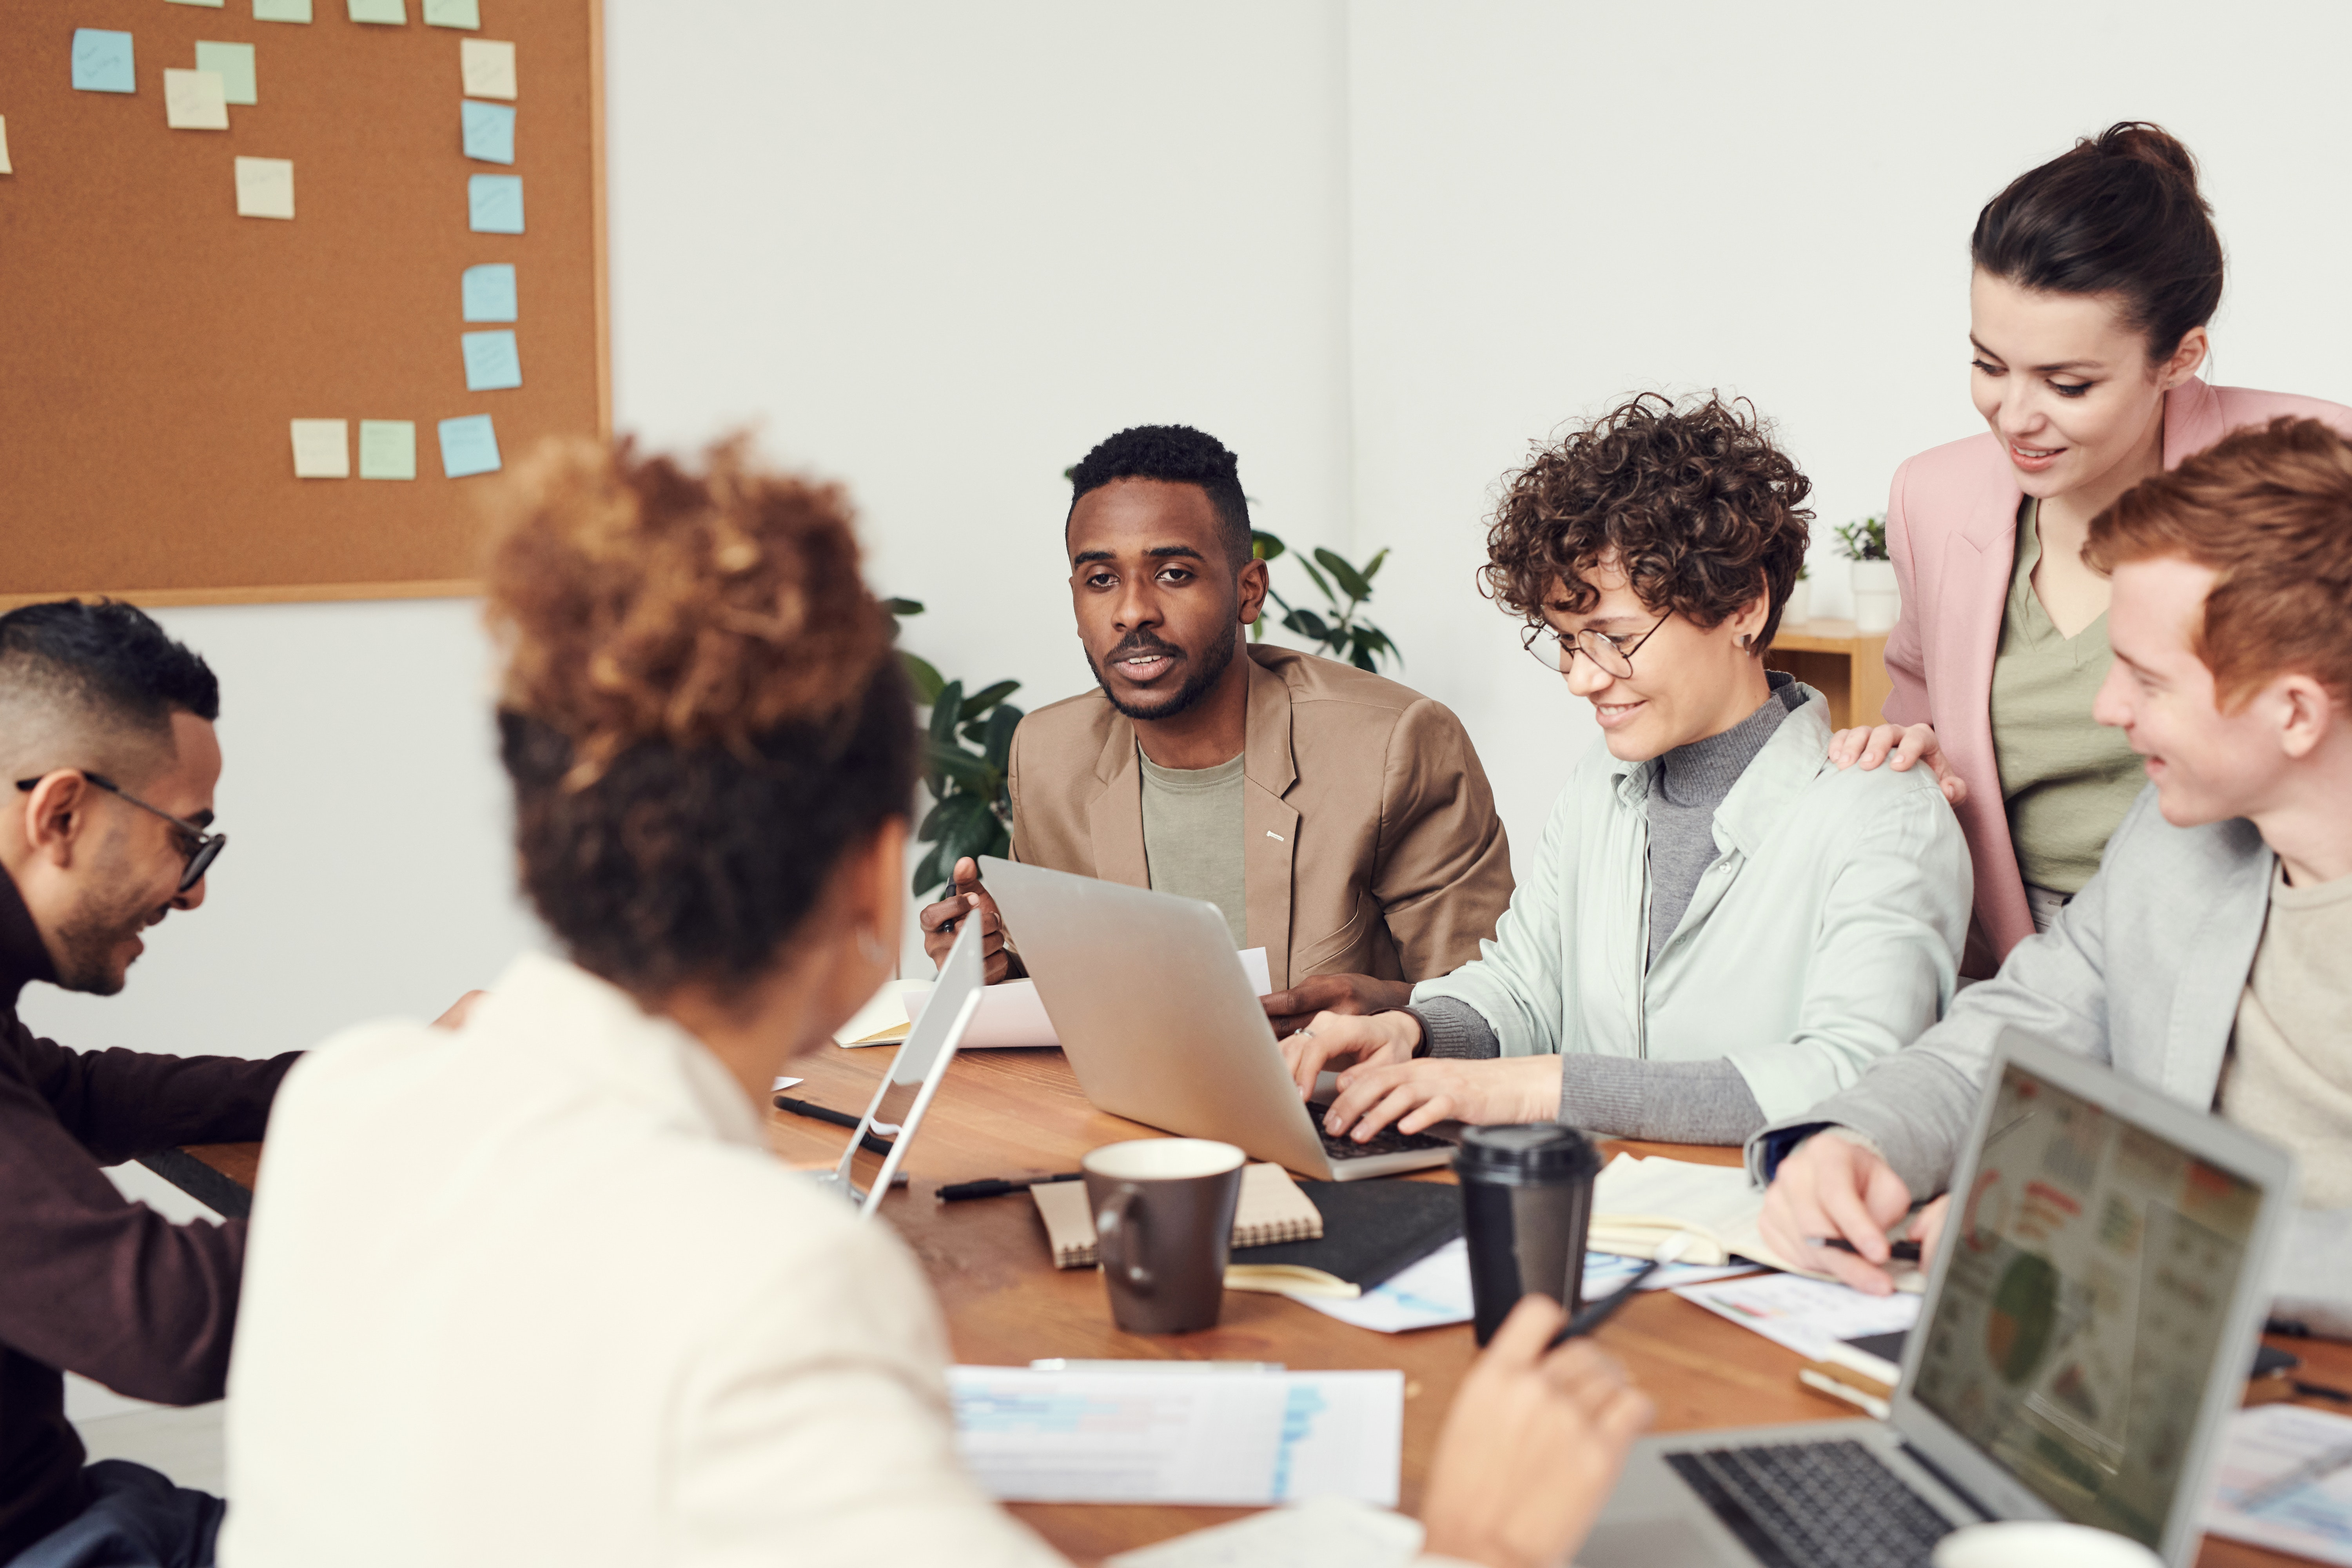 CAN MANAGEMENT CONSULTANTS ACTUALLY BE MEANINGFUL?